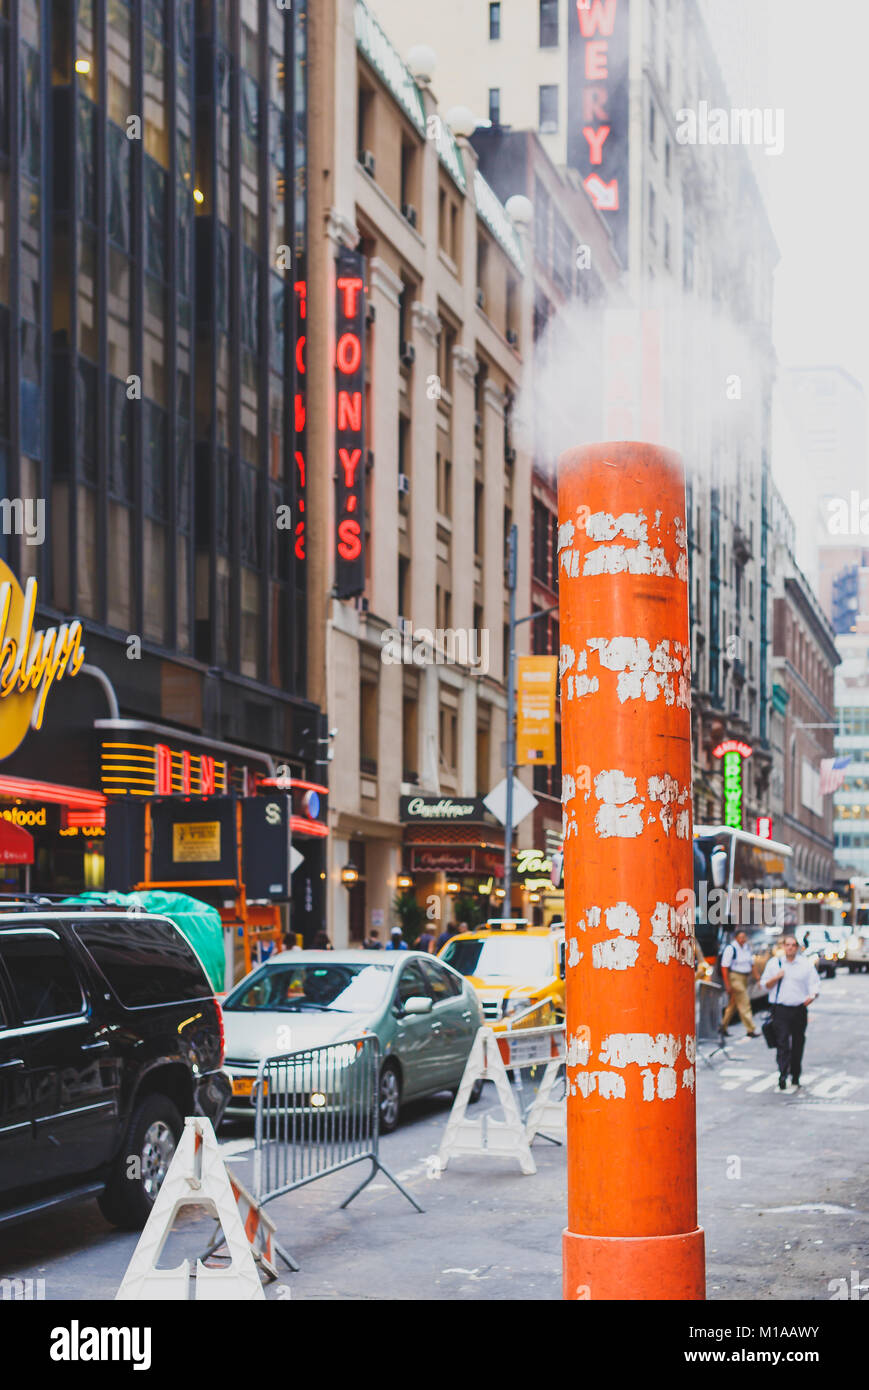 NEW YORK, NY - June 10th, 2014: steam vent cones in the streets of Manhattan among the traffic - Stock Image